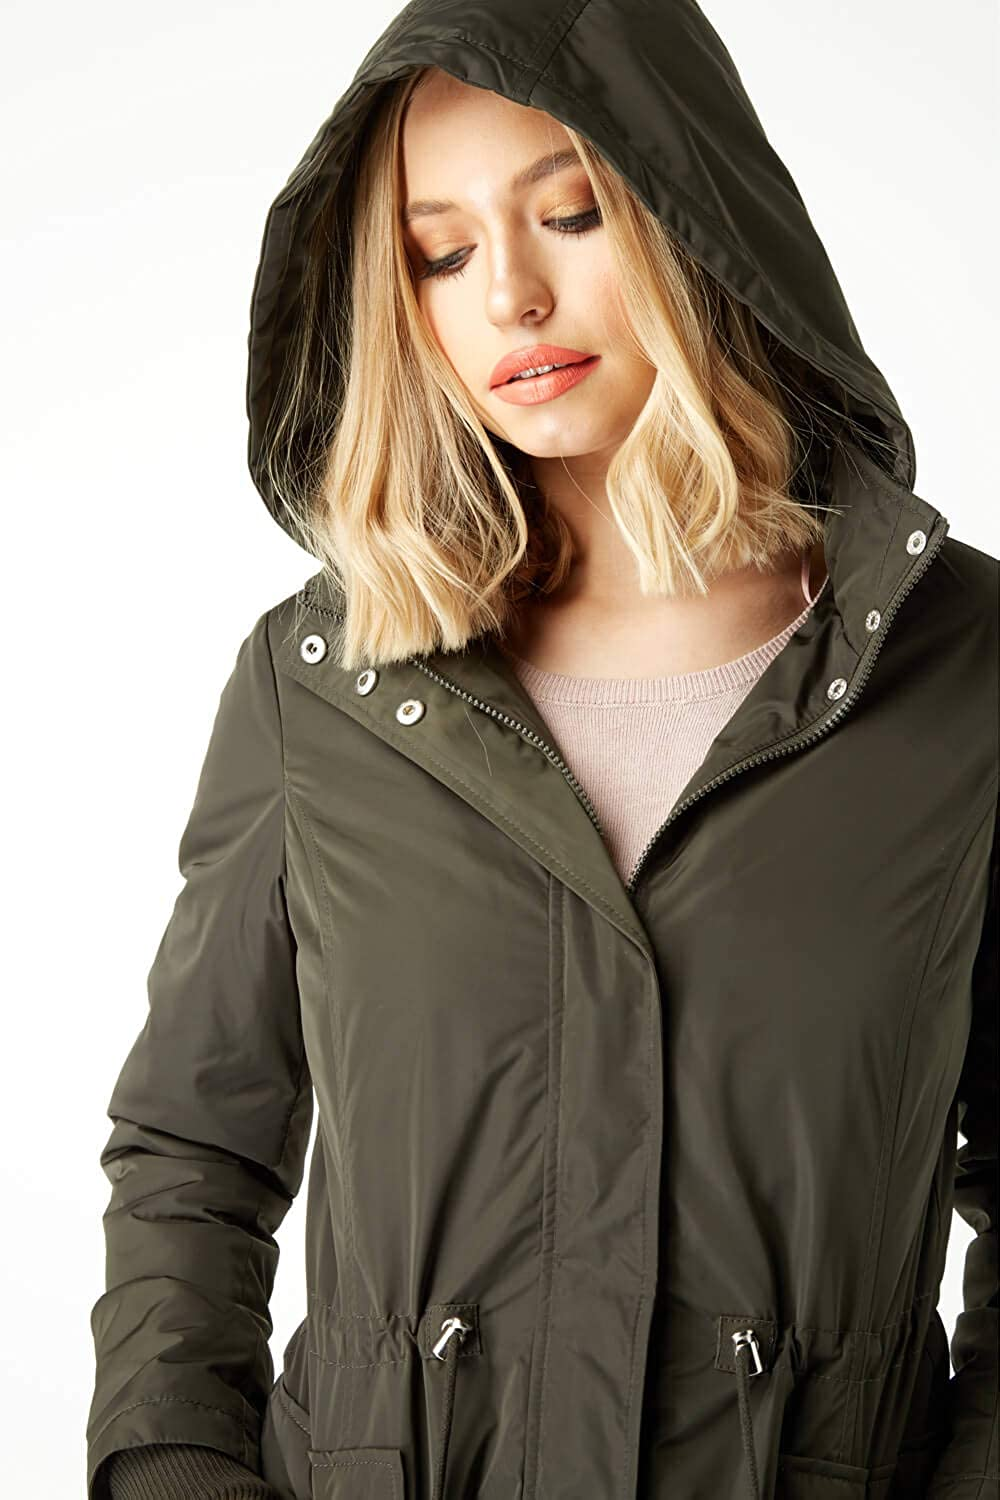 Roman Originals Women Zip Pocket High Neck Parka Coat Ladies Smart Casual Everyday Hooded Toggle Drawstring Long Sleeve Showerproof Quilted Padded Coats